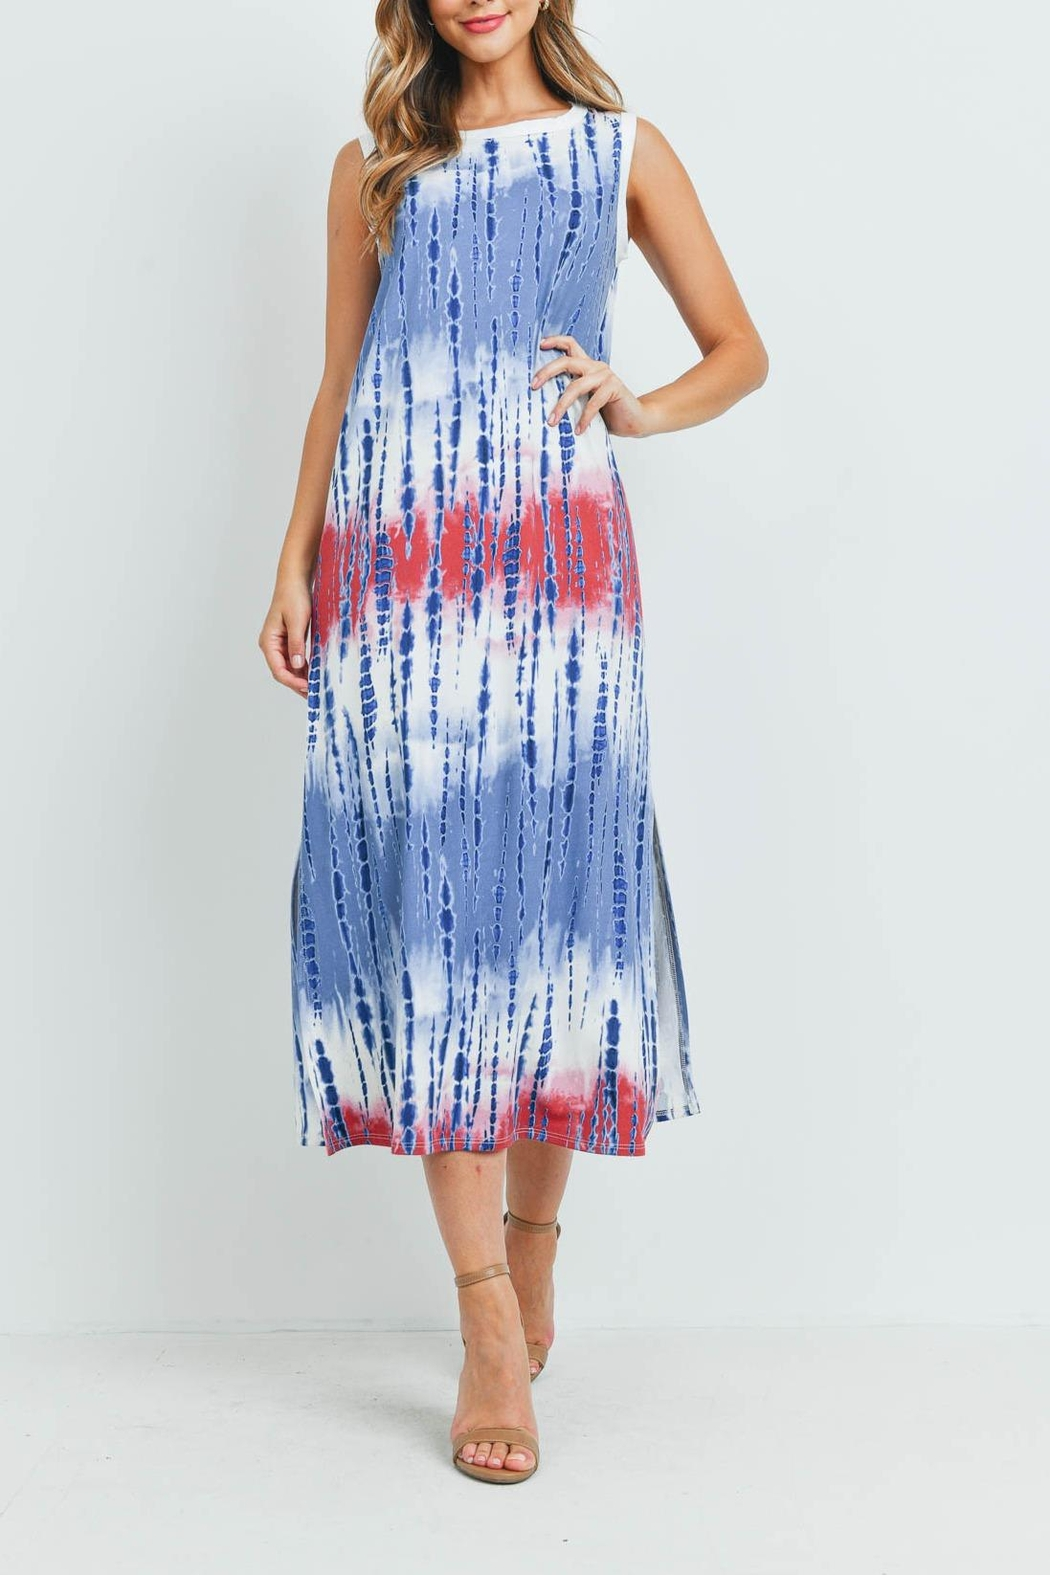 Riah Fashion Tie-Dye-Tank-Dress-With-Side-Slit - Front Cropped Image